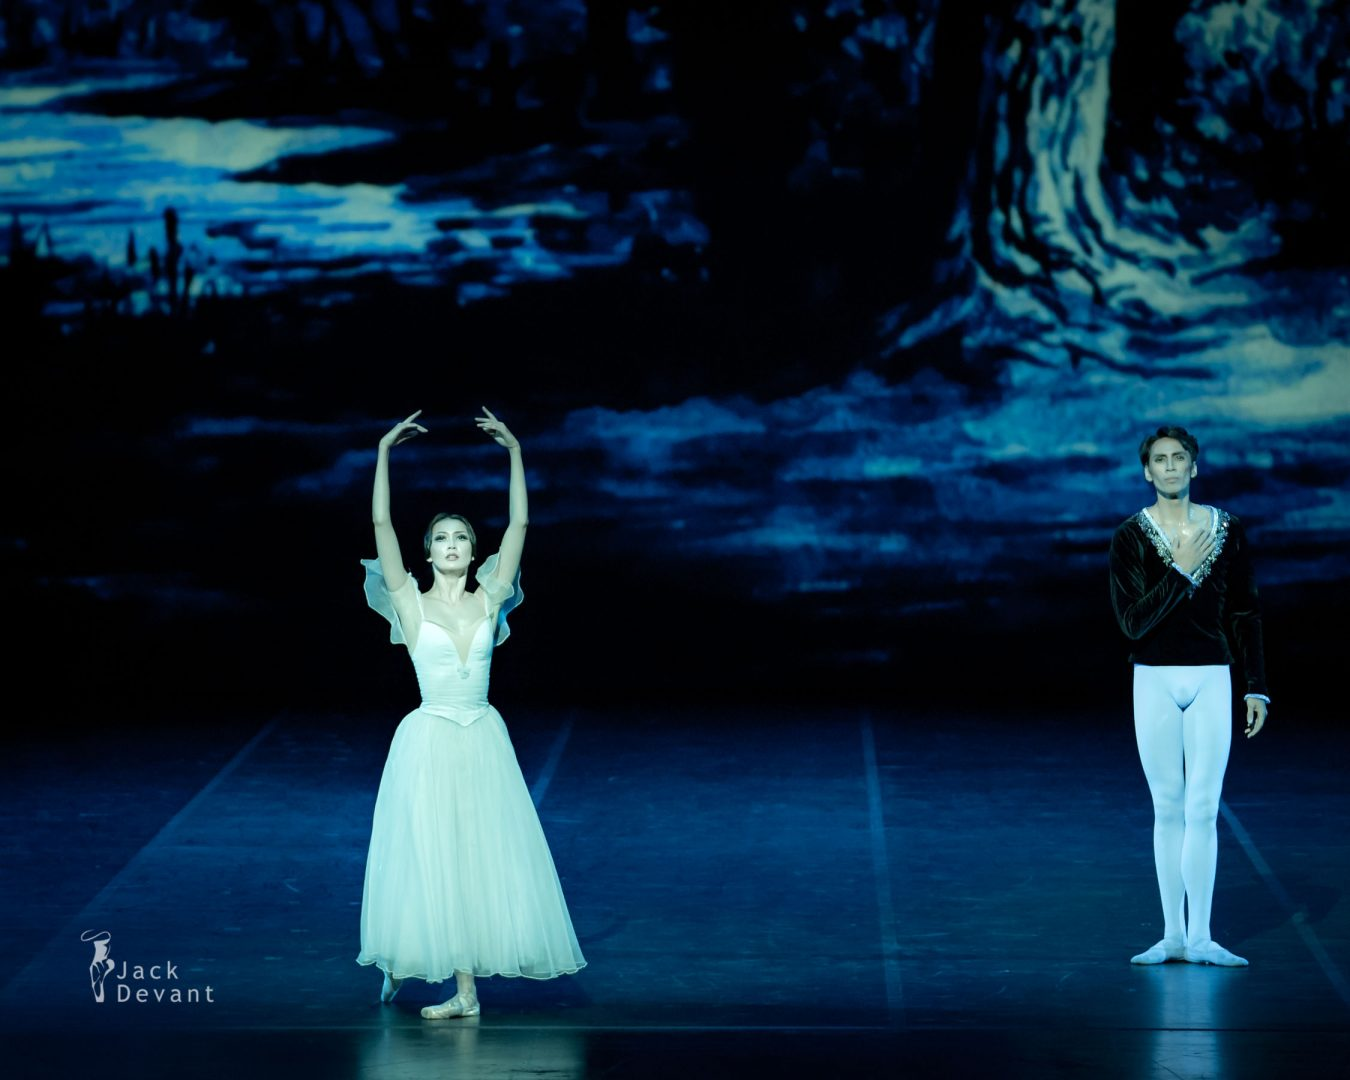 Aigerim Beketaeva and Olzhas Tarlanov in Giselle final bow